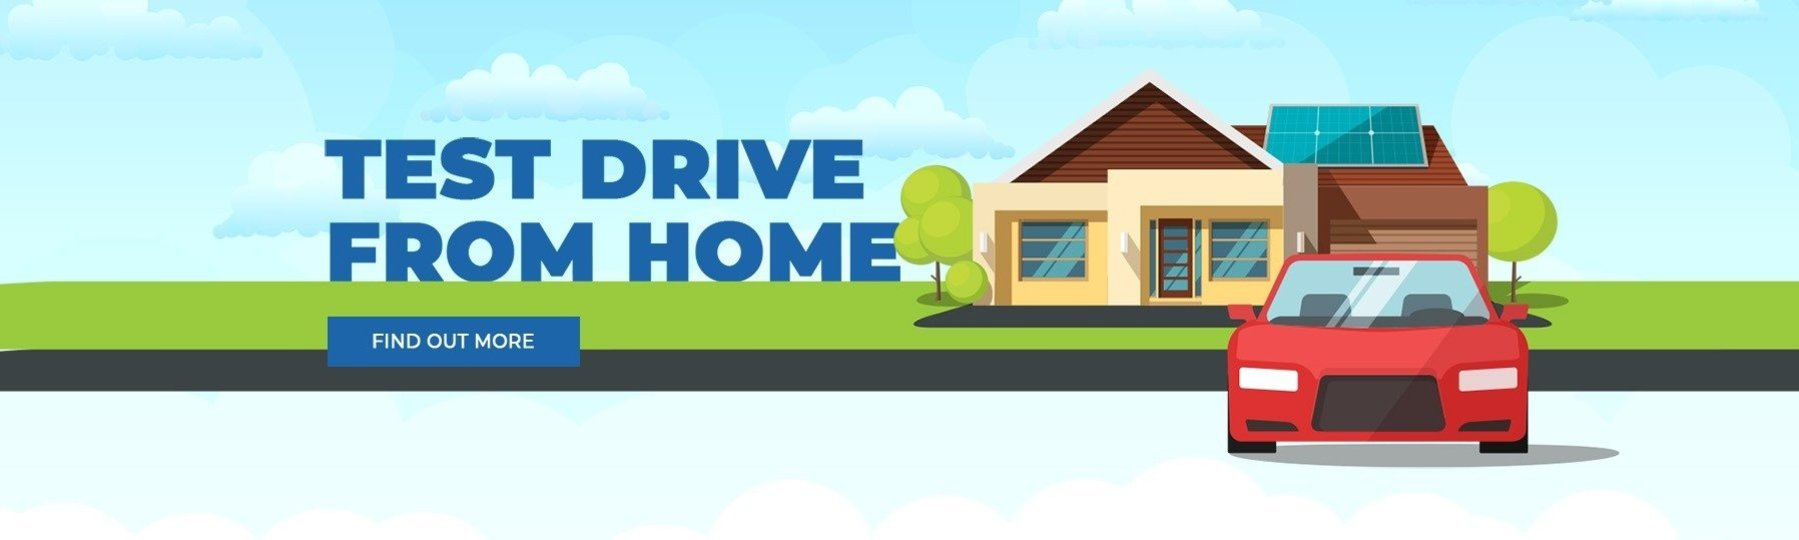 Western Plains Mazda | Test Drive From Home